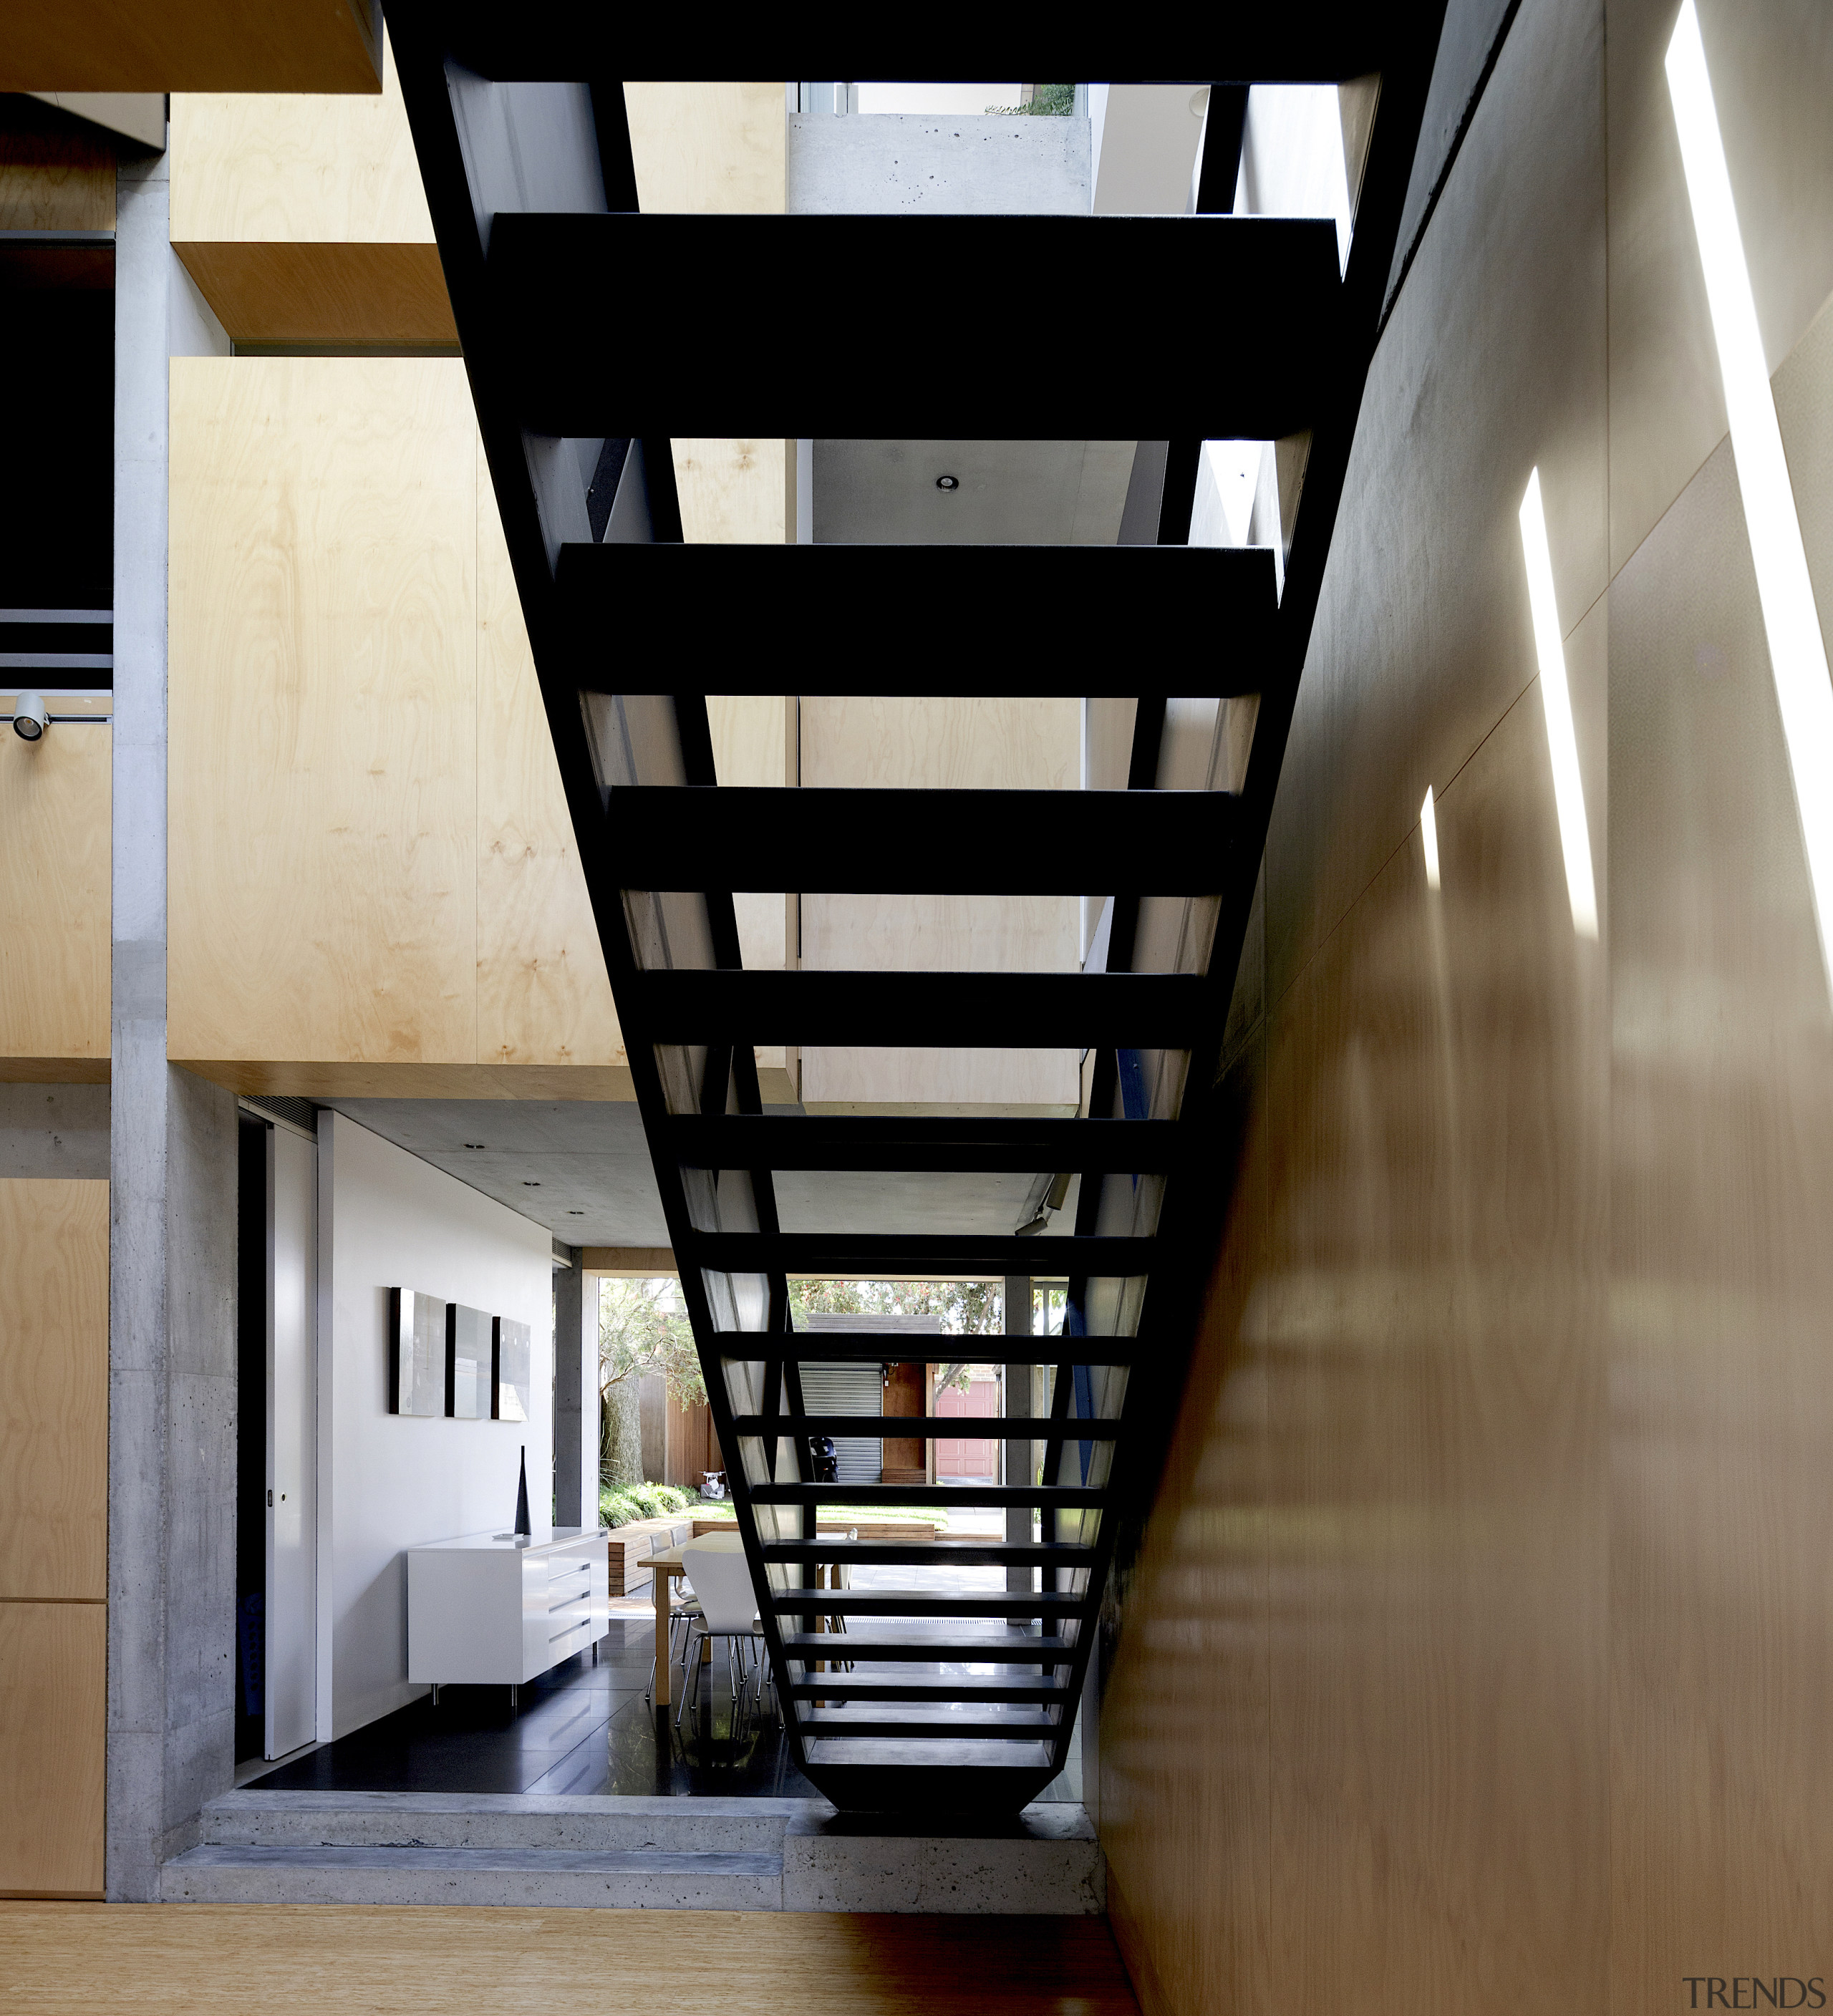 The black steel staircase acts as a bridge